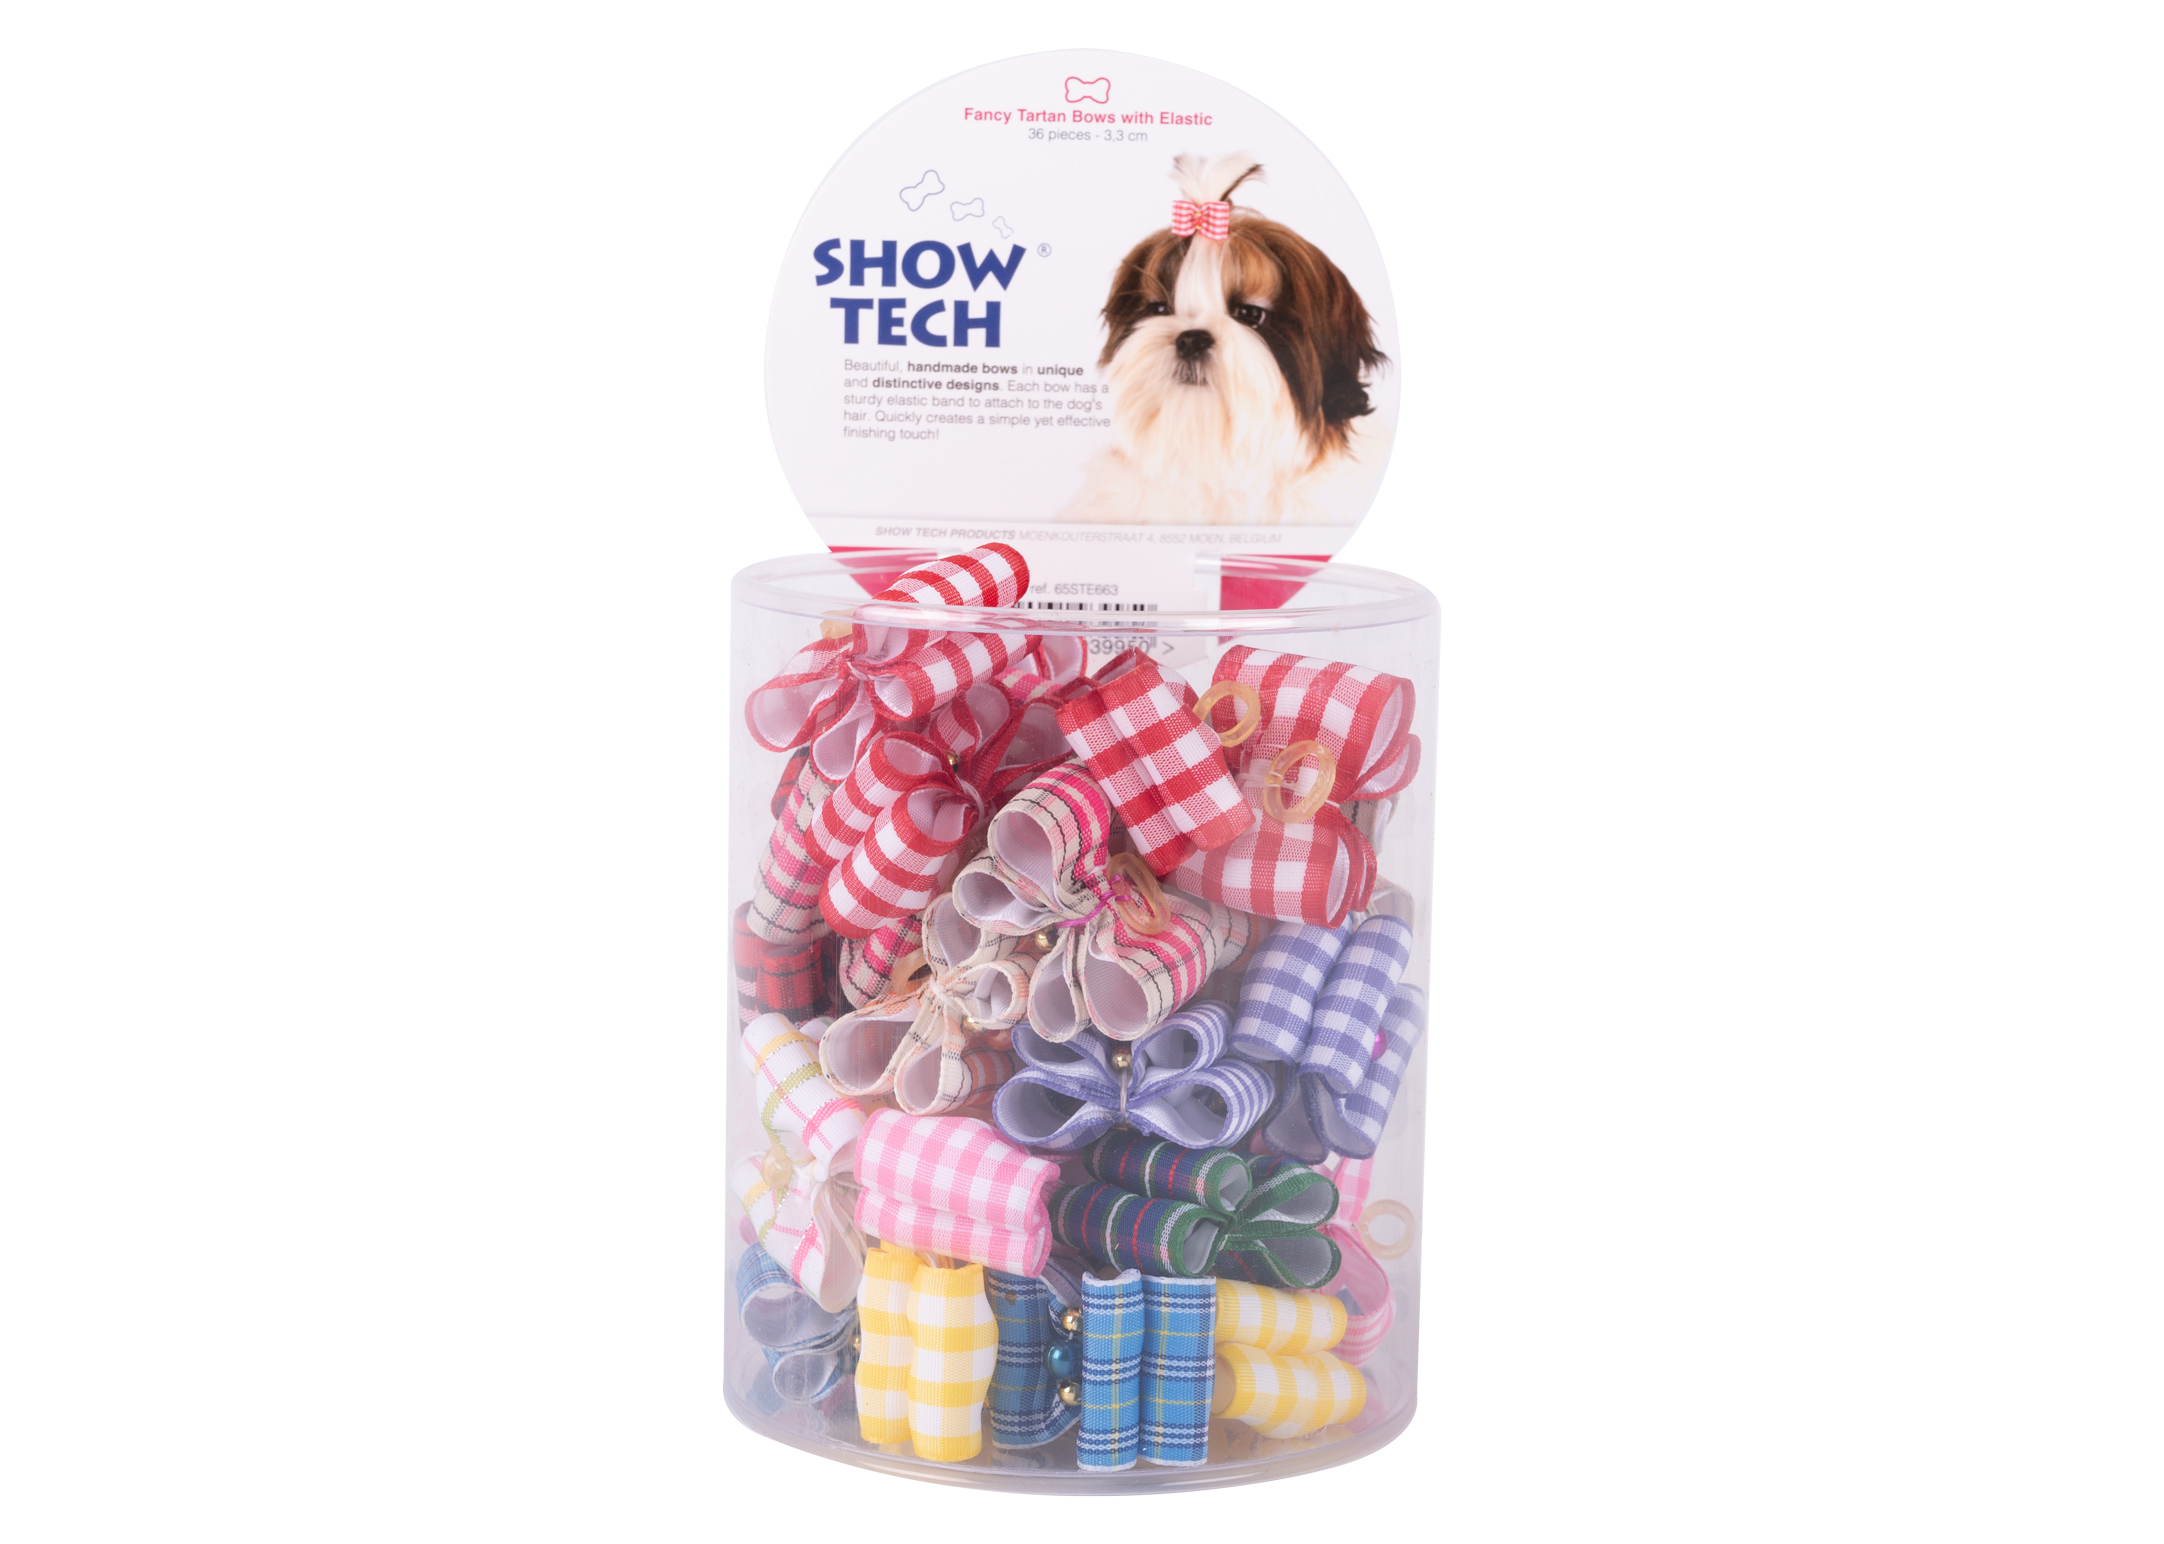 Show Tech Fancy Tartan Bows with Elastic 36 pcs Bows